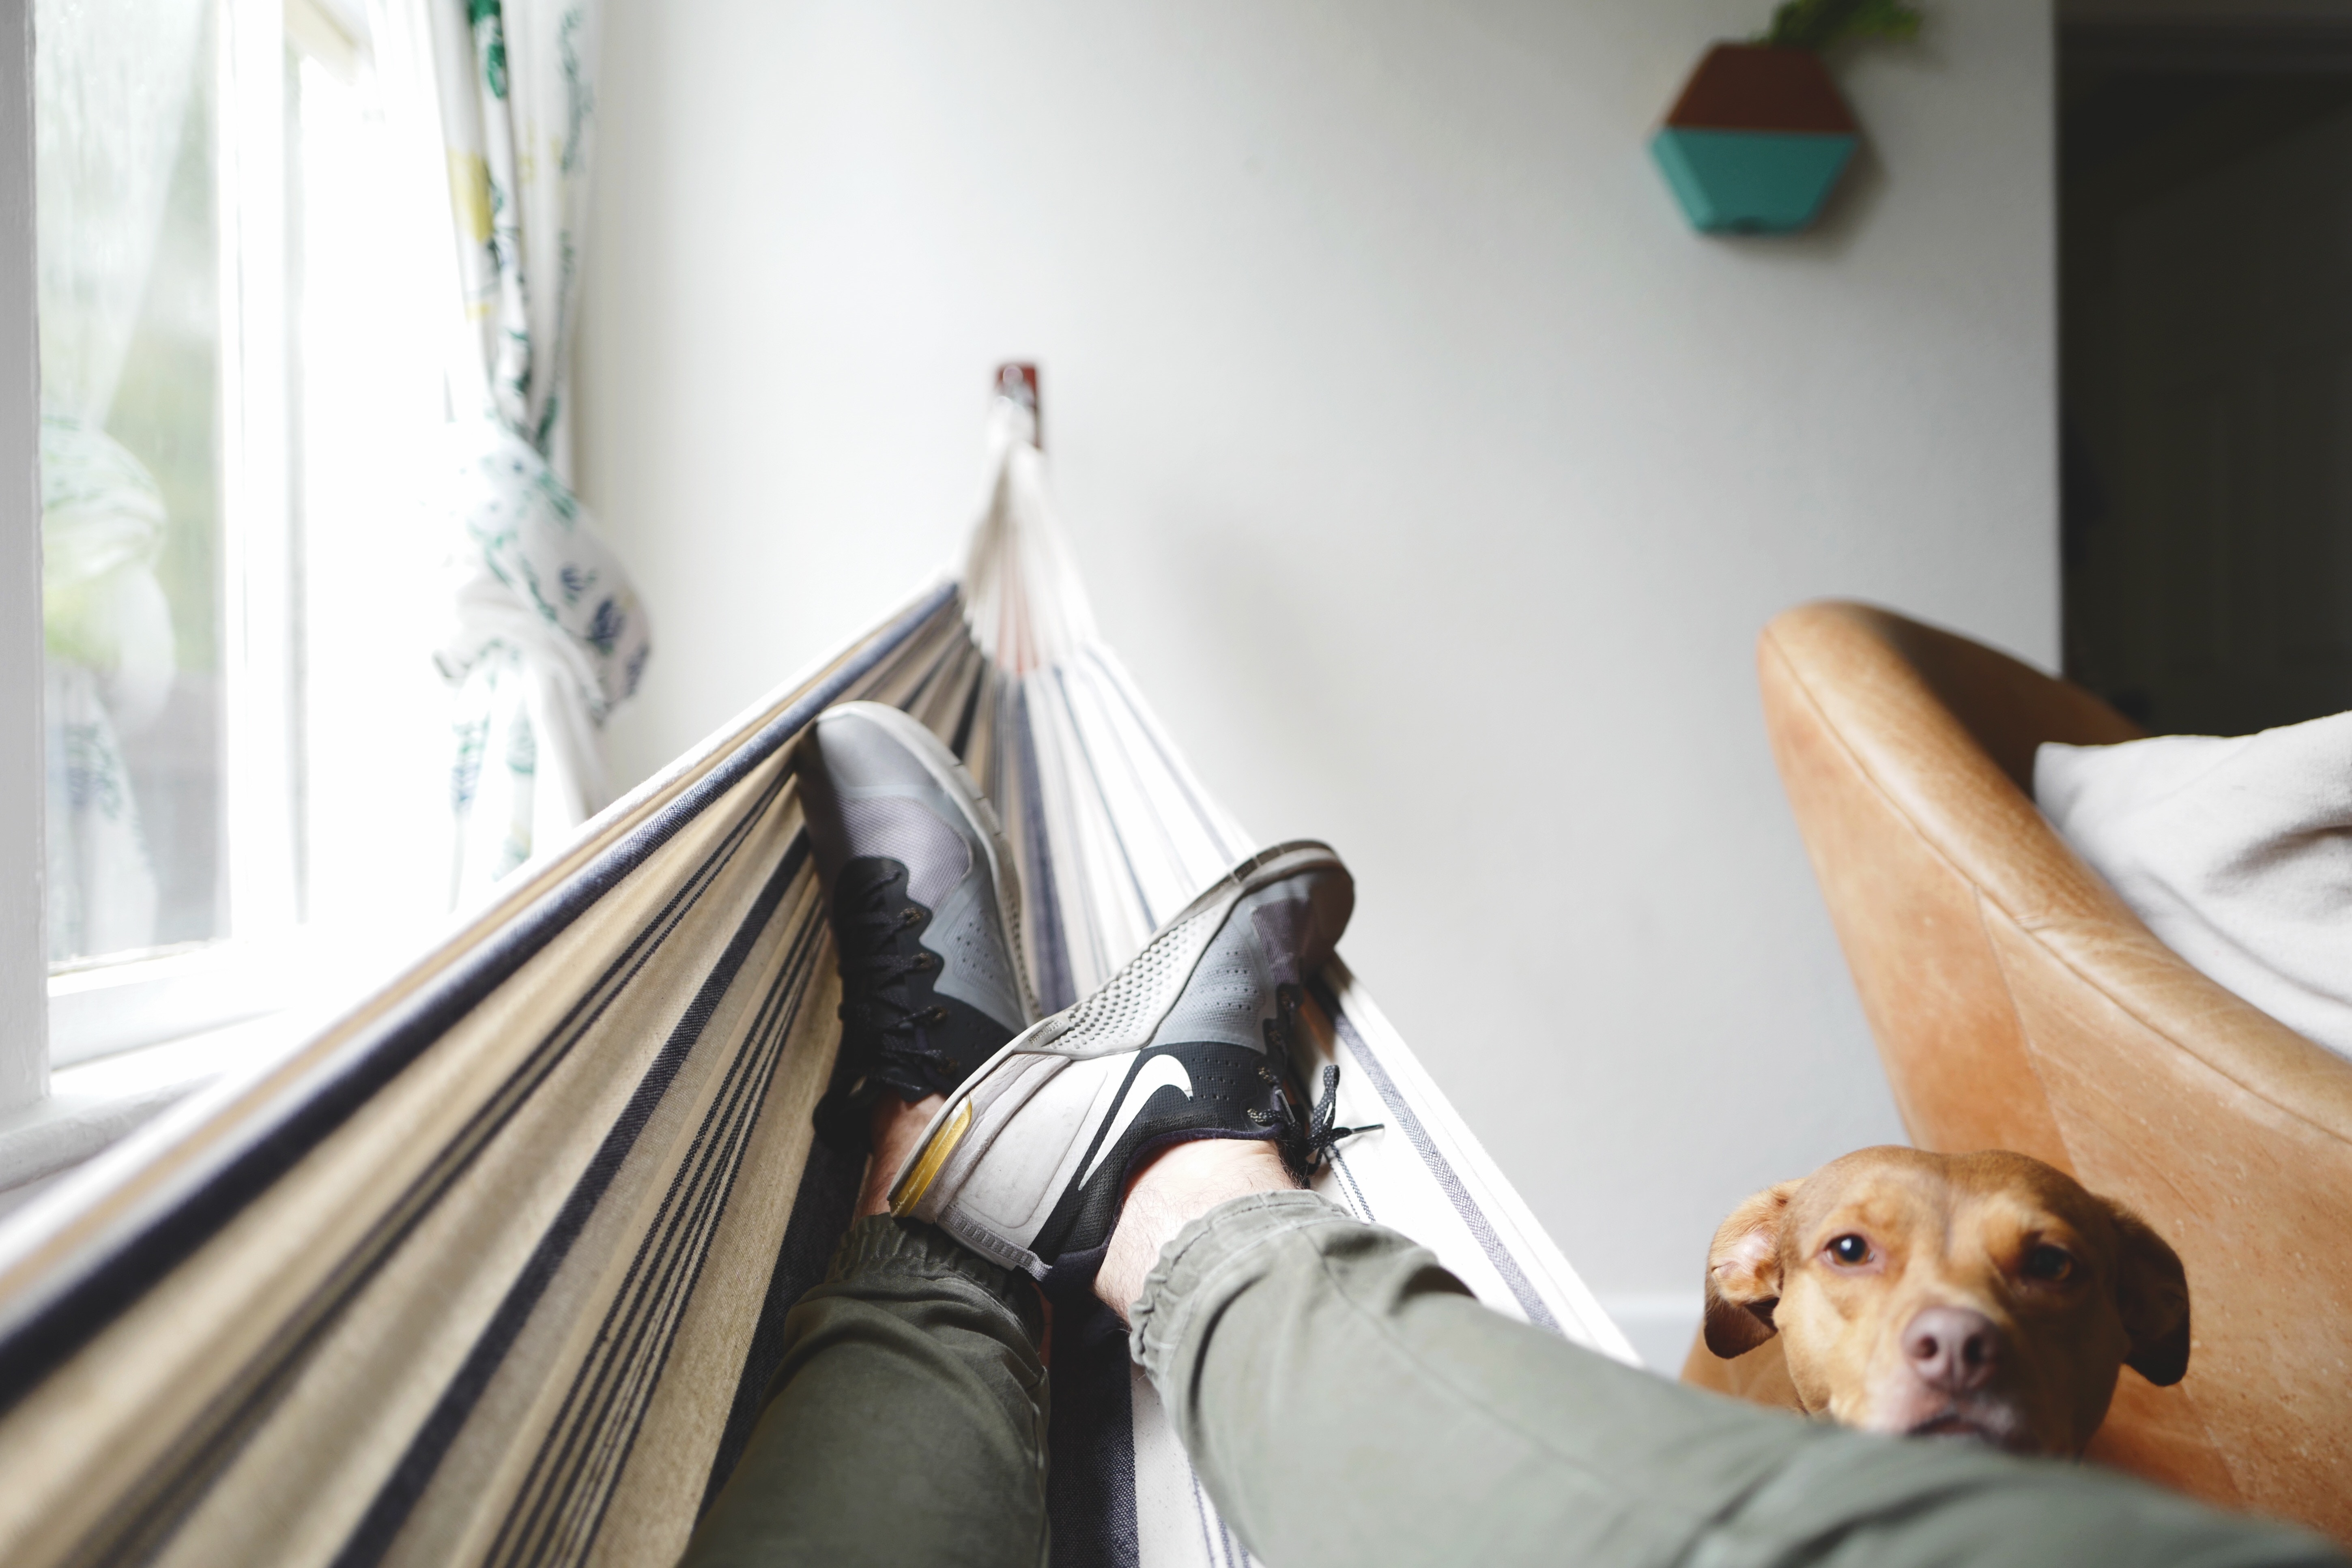 The Cancer Voice Asia | Share your lazy days now without feeling any guilt. The time you enjoy wasting, is time not wasted. Photo by Drew Coffman on Unsplash.